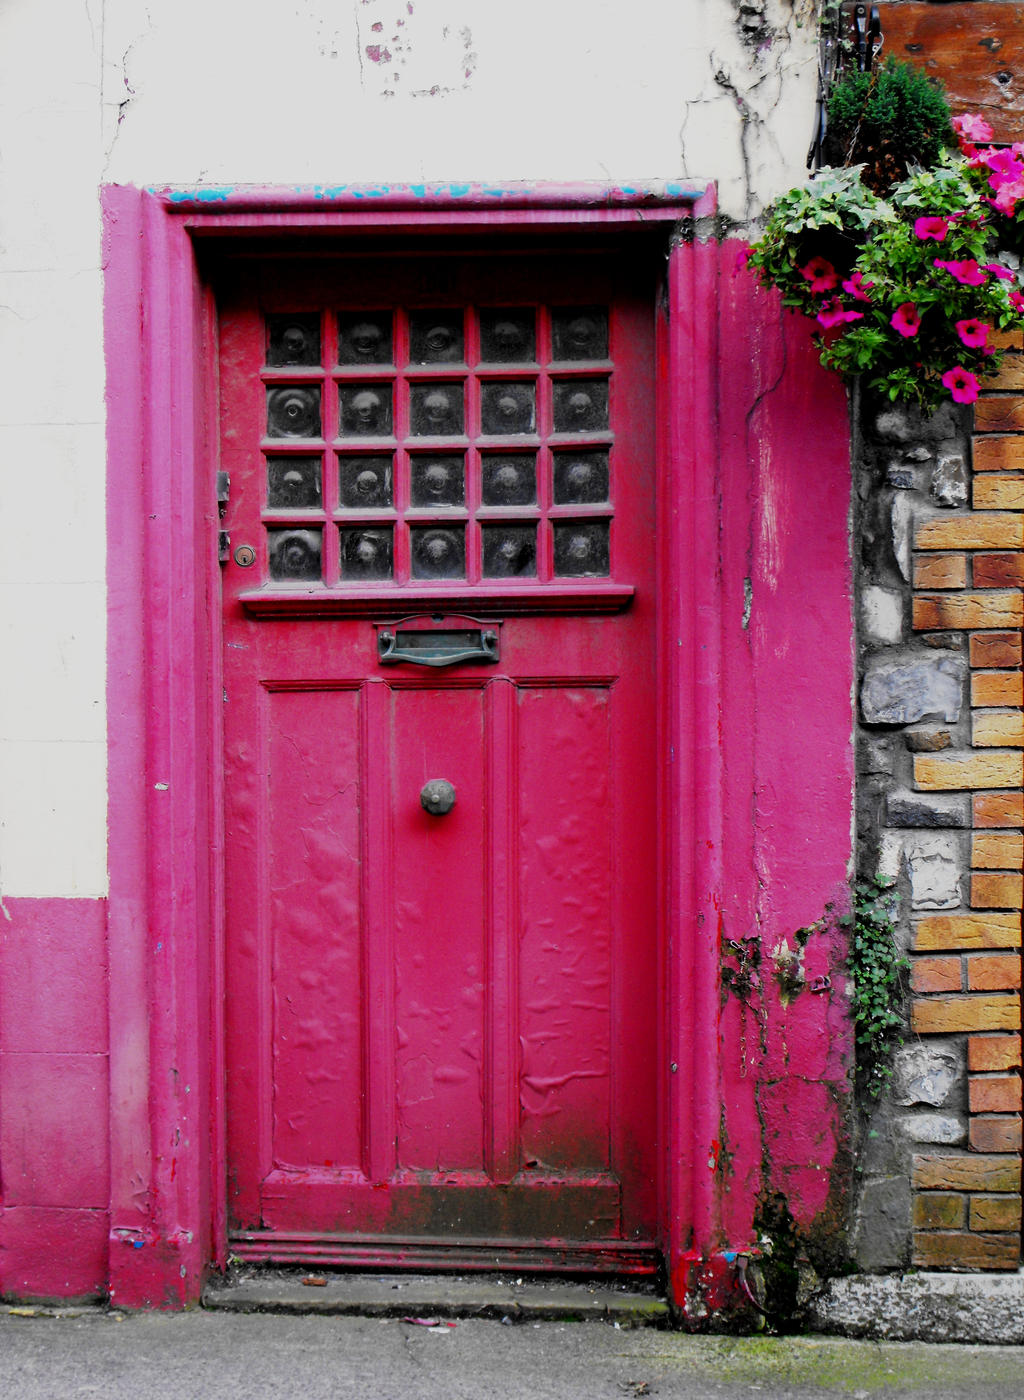 ... the pink door by edera-nys & the pink door by edera-nys on DeviantArt